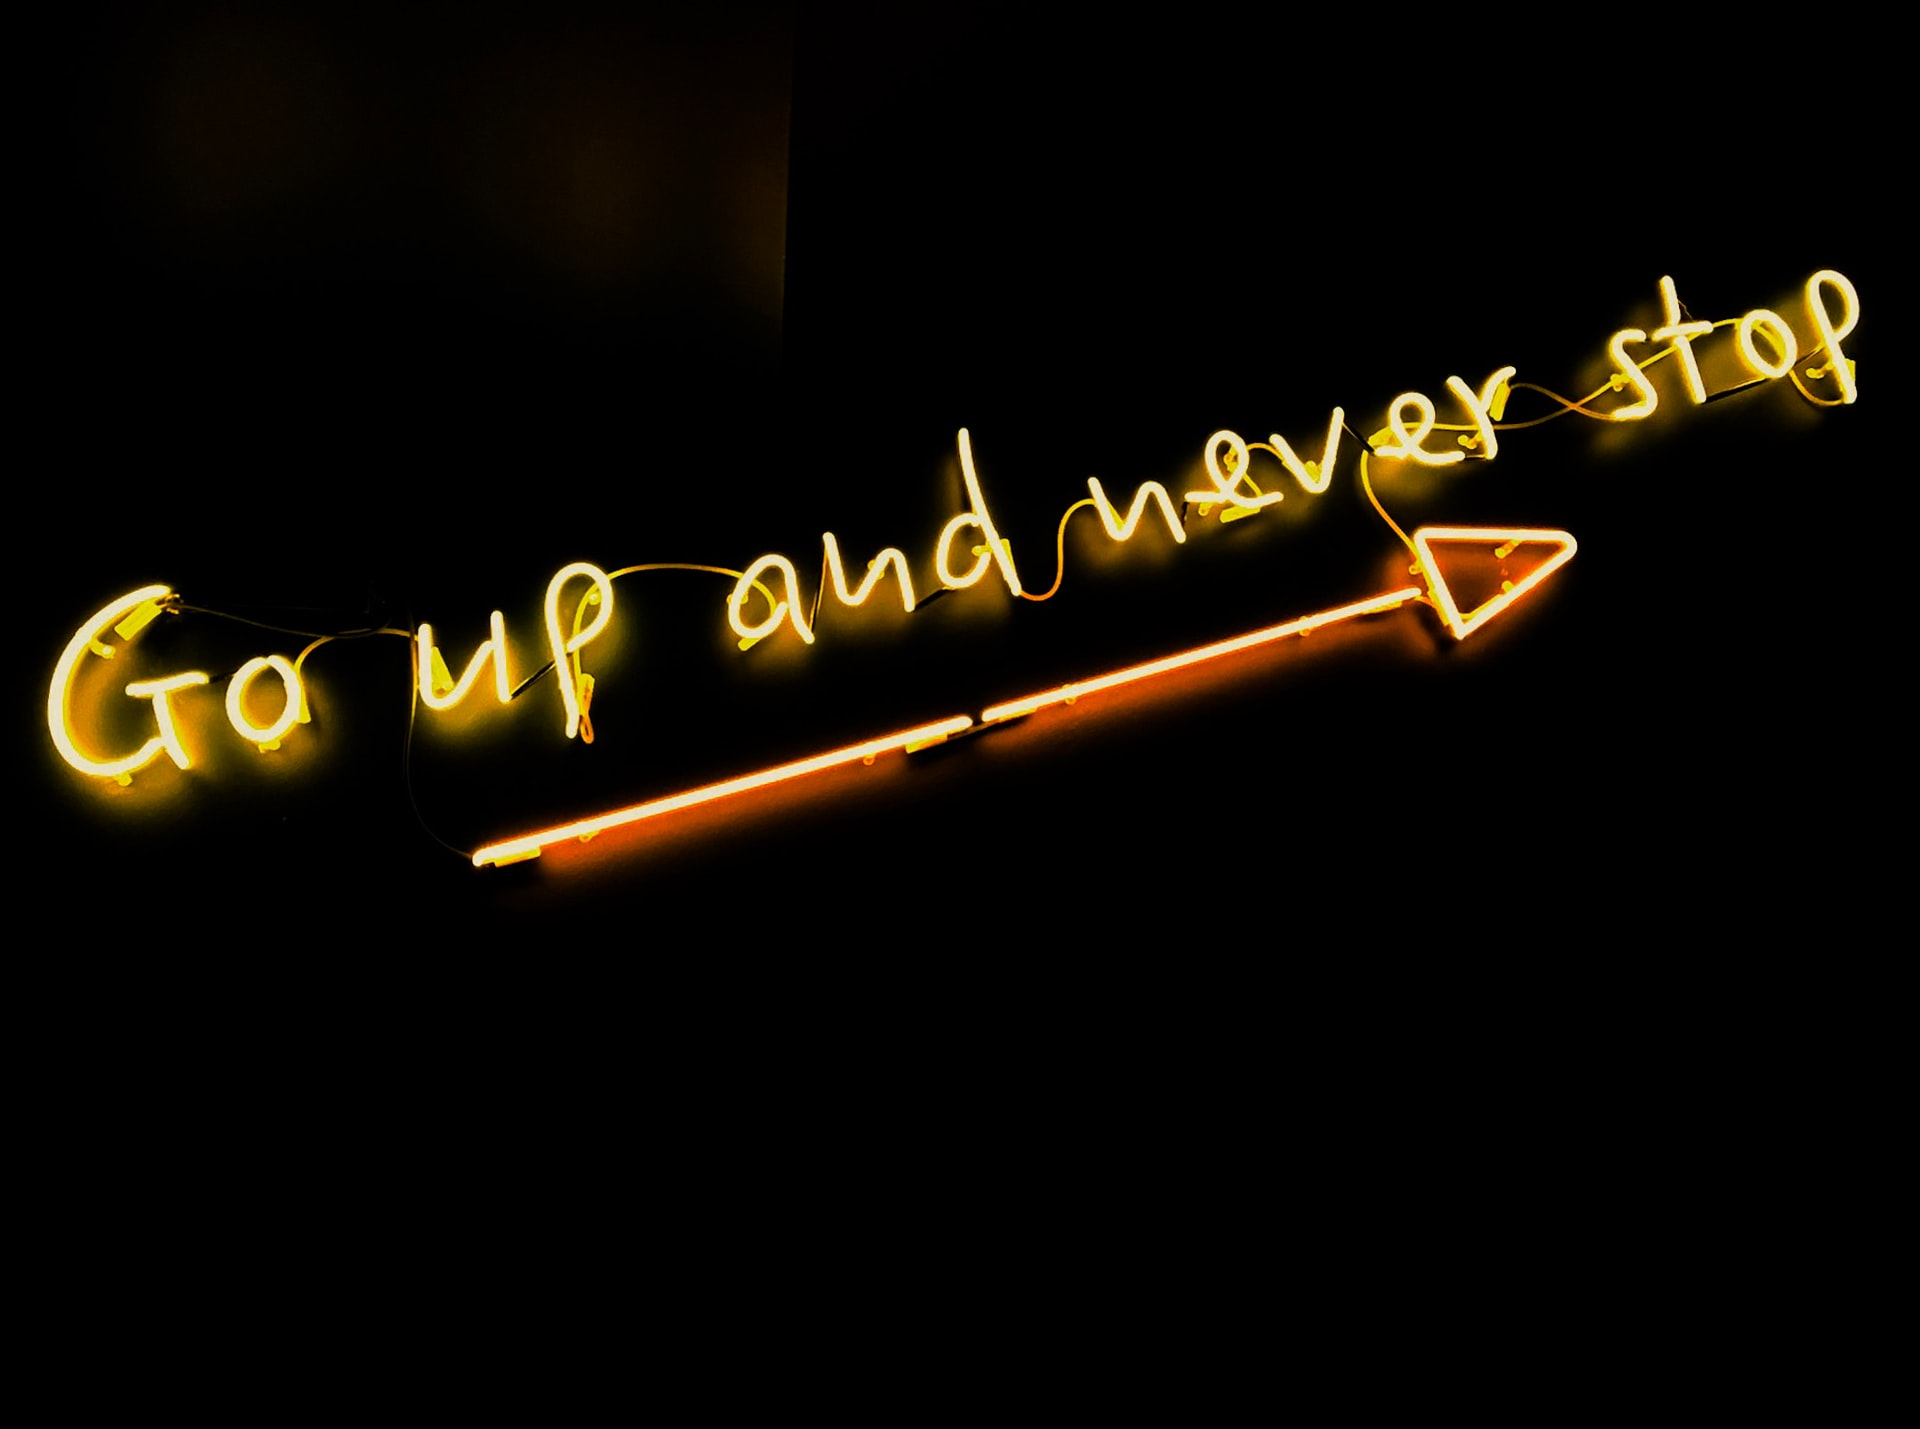 The image shows a neon sign on a black background. The neon sign reads 'Go up and never stop' and underneath has a neon arrow pointing North-east.